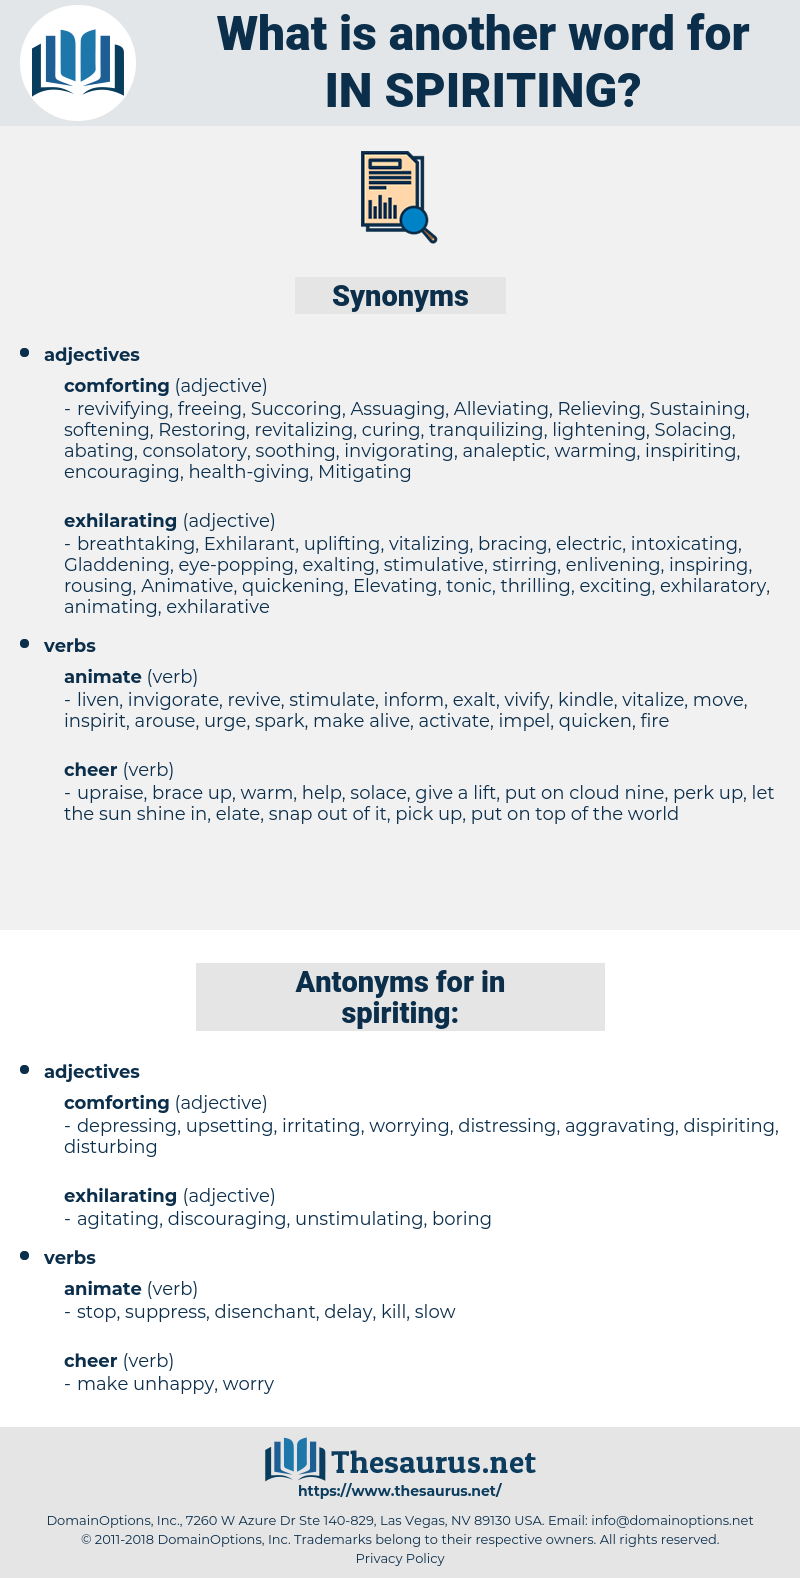 in-spiriting, synonym in-spiriting, another word for in-spiriting, words like in-spiriting, thesaurus in-spiriting